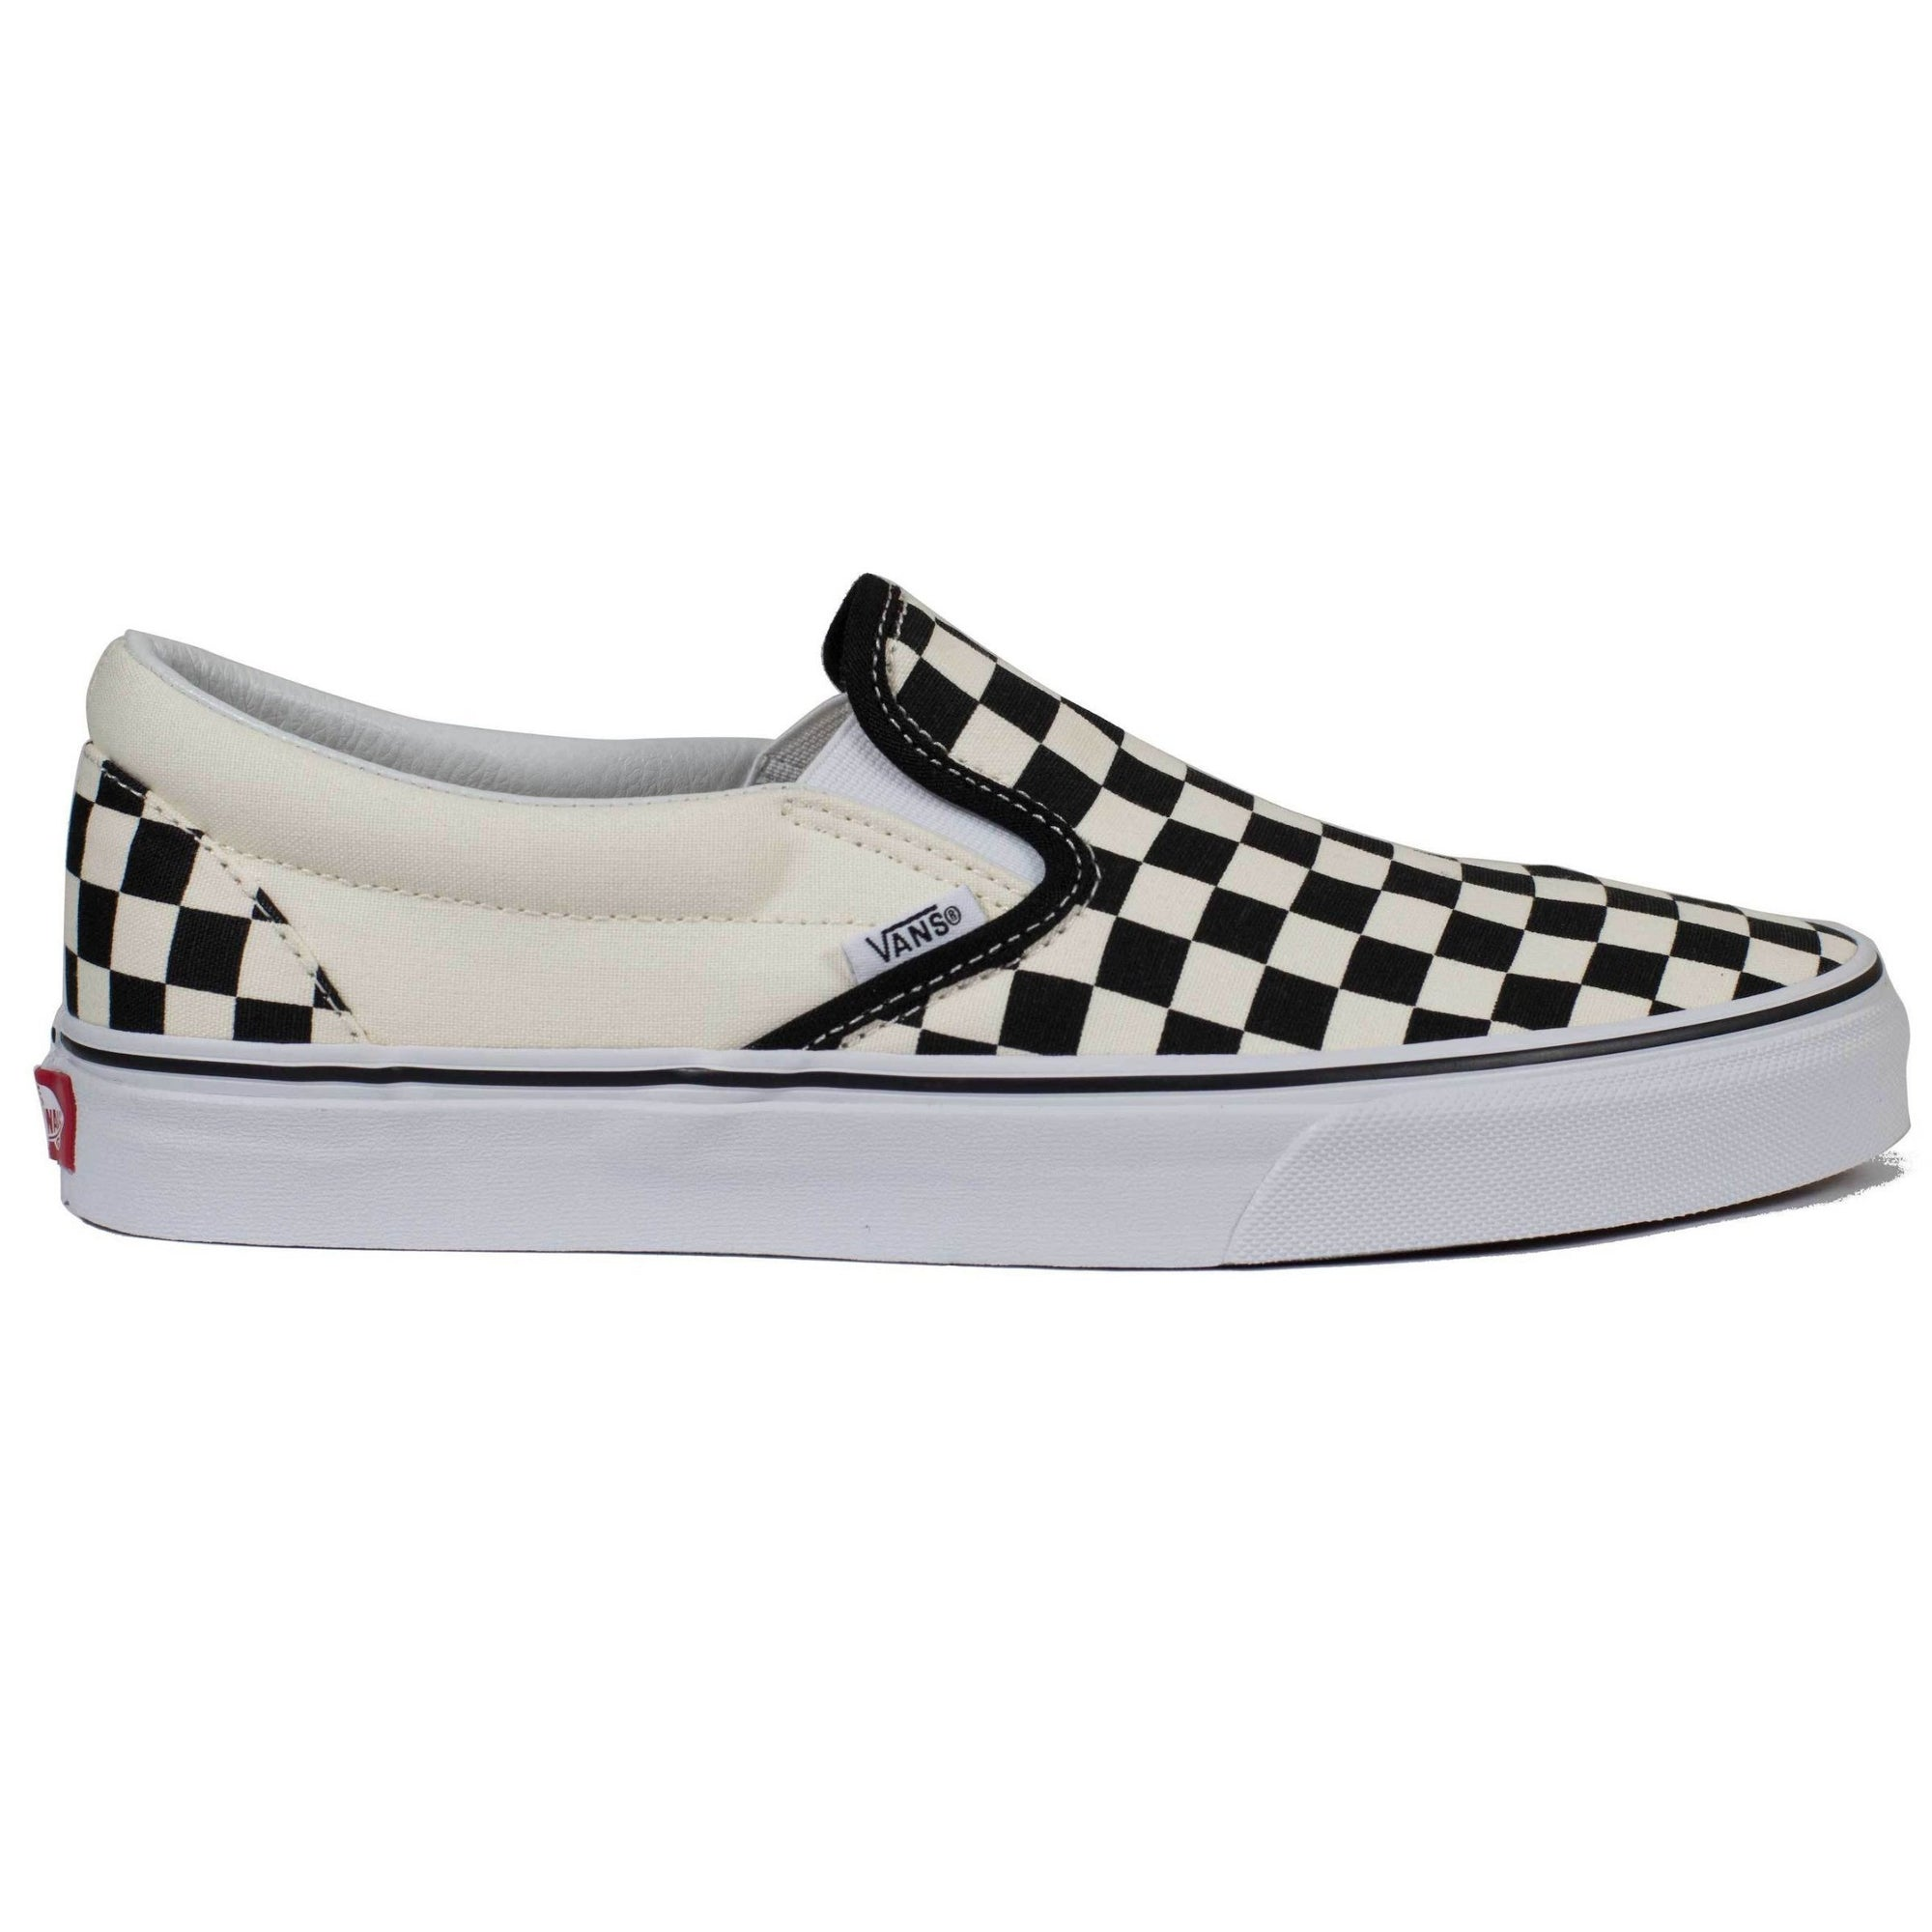 3a2d6682ea11 Vans Slip-on (Checkerboard) - Black Off White Check - Chane